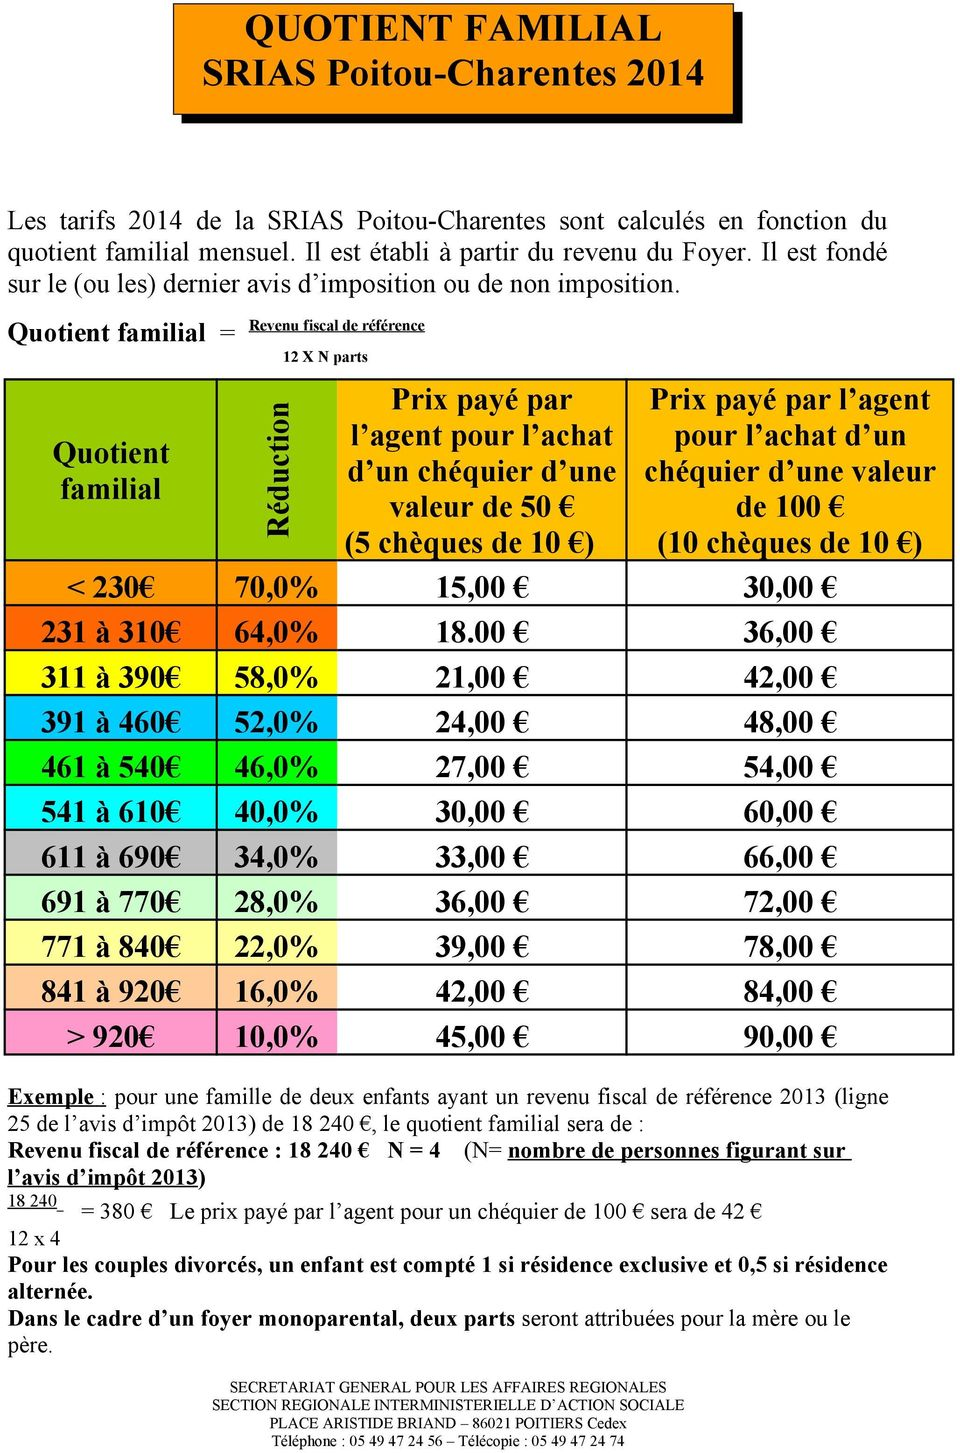 Quotient familial = Revenu fiscal de référence Quotient familial Réduction 12 X N parts < 230 231 à 310 311 à 390 391 à 460 461 à 540 541 à 610 611 à 690 691 à 770 771 à 840 841 à 920 > 920 70,0%